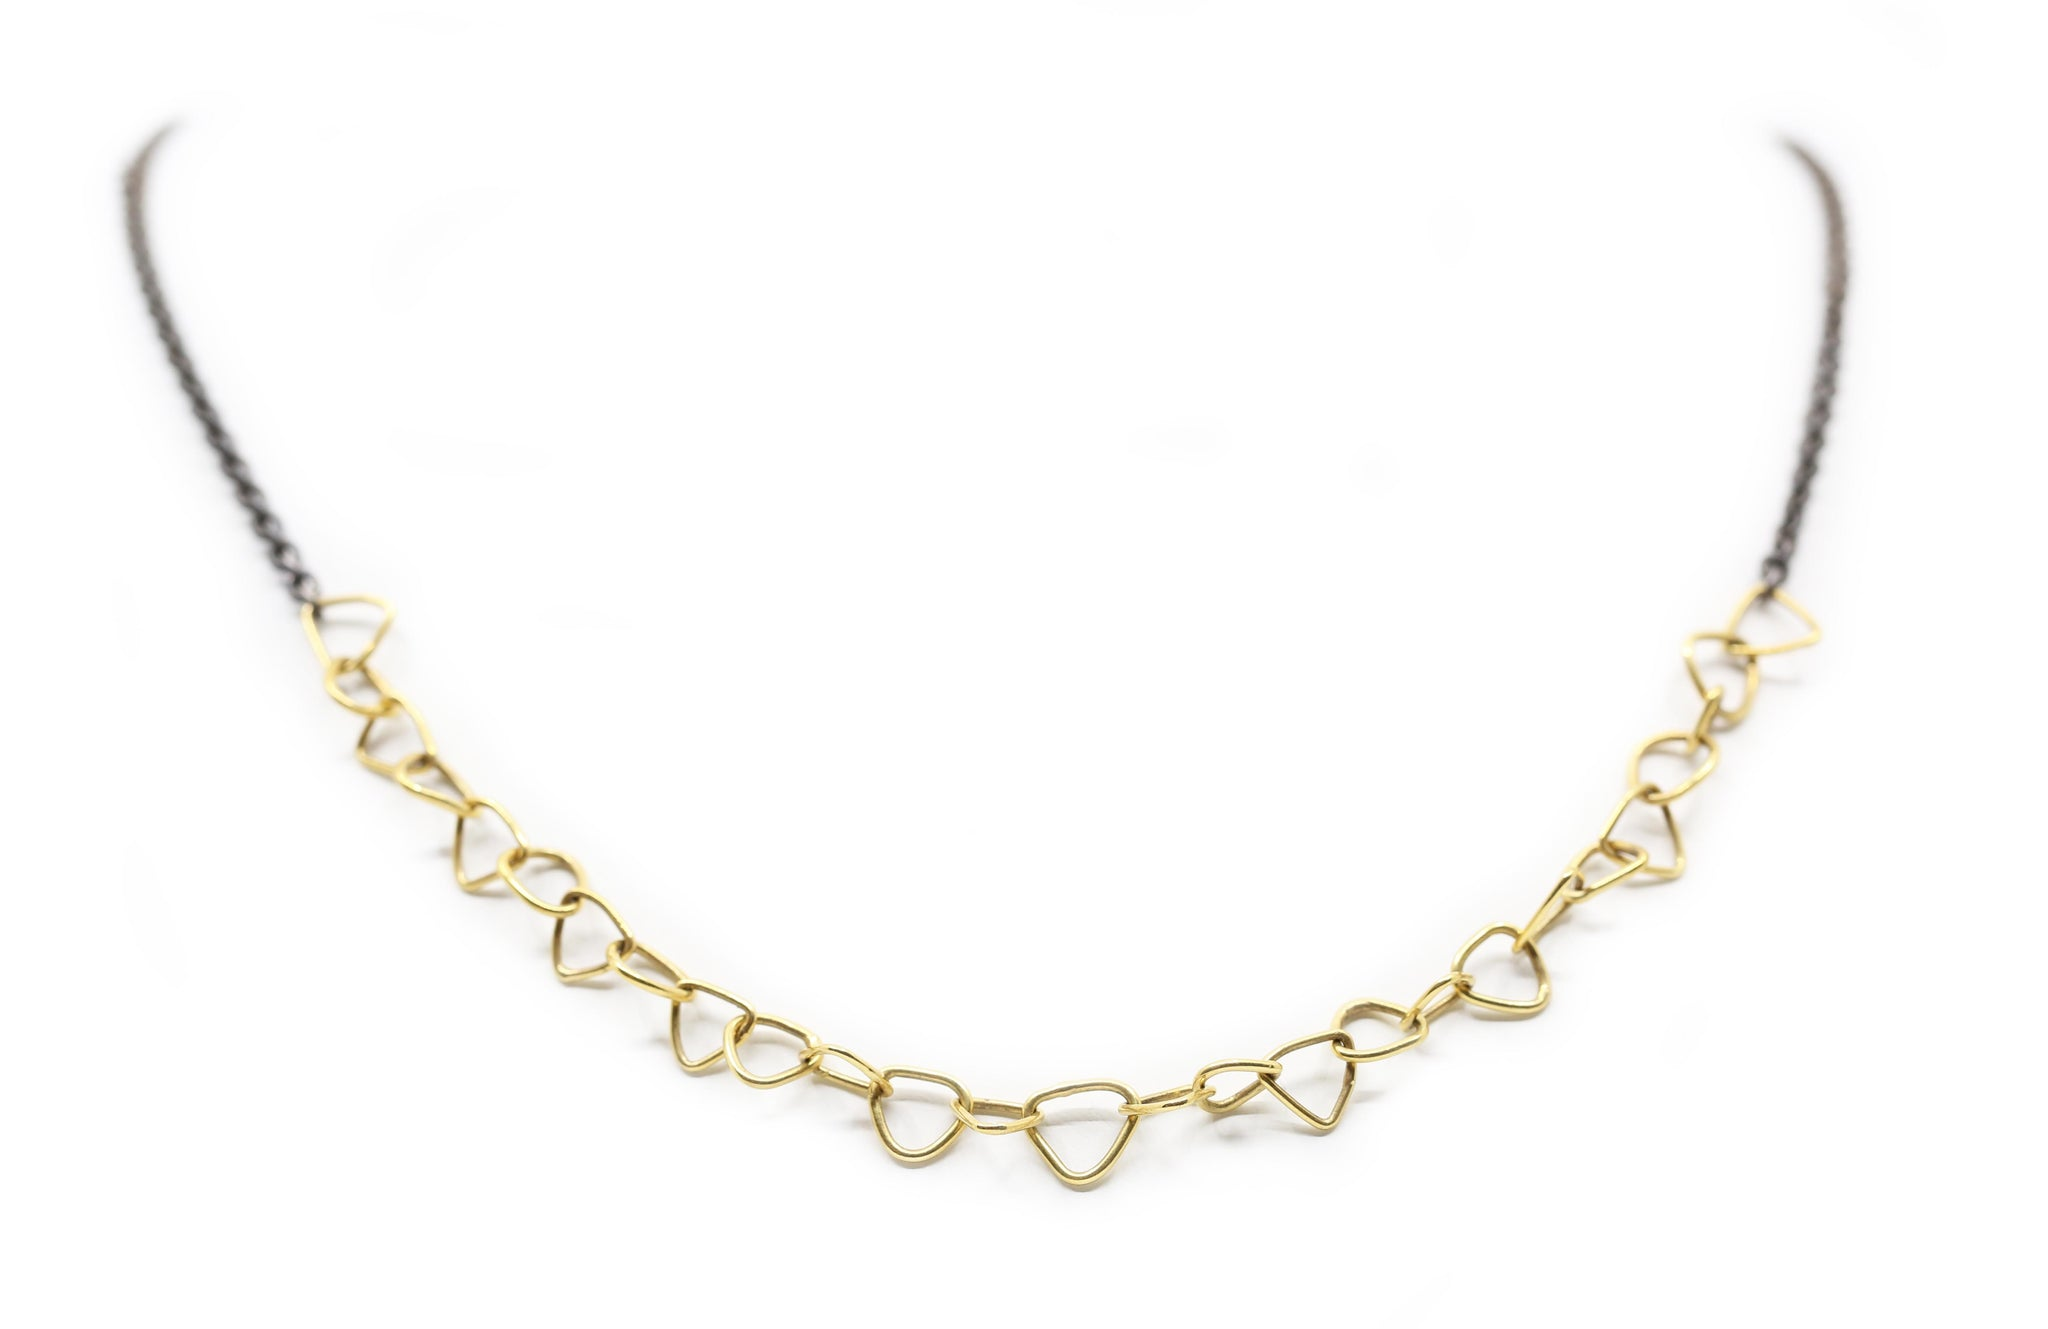 Trigon Handmade Gold Triangle Chain